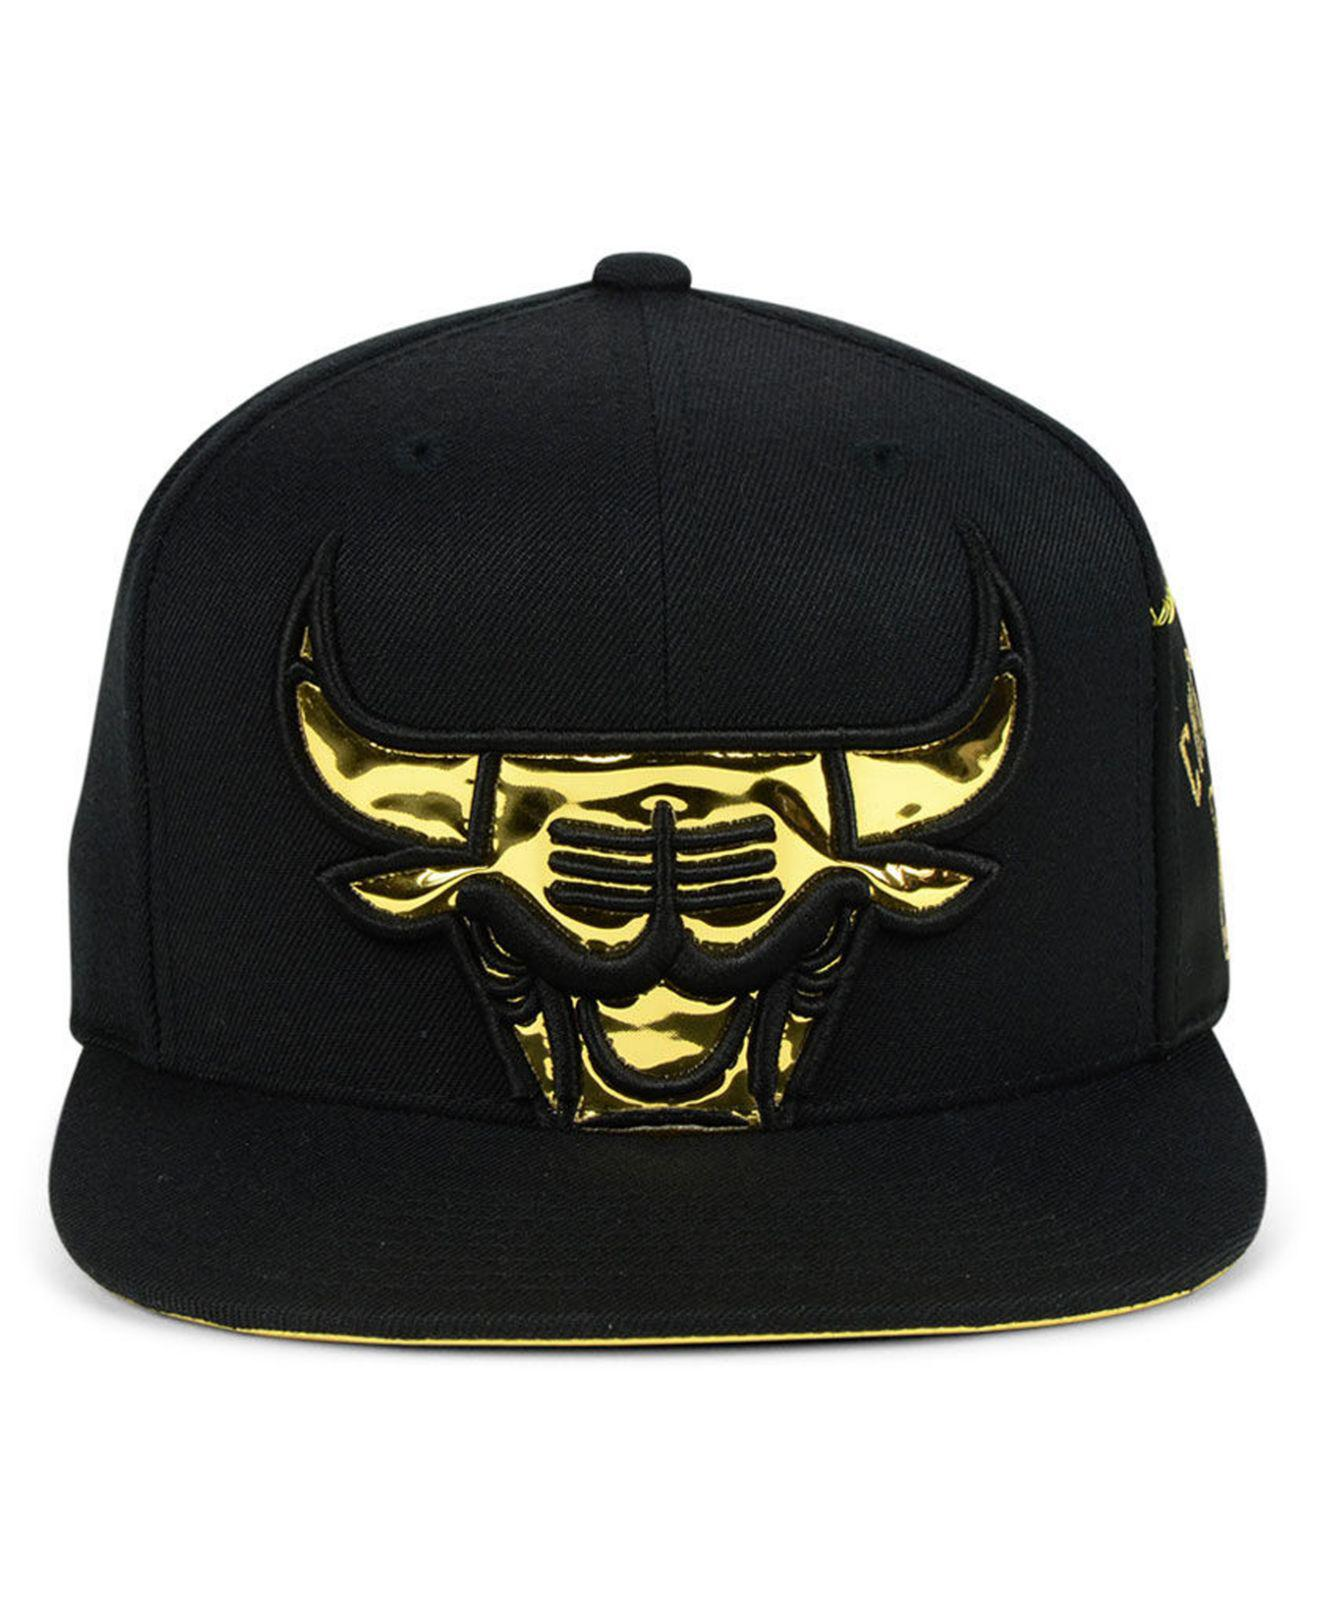 new product b9d9b 3ea7a ... release date lyst mitchell ness chicago bulls patent cropped snapback  cap in 748c1 2c1b0